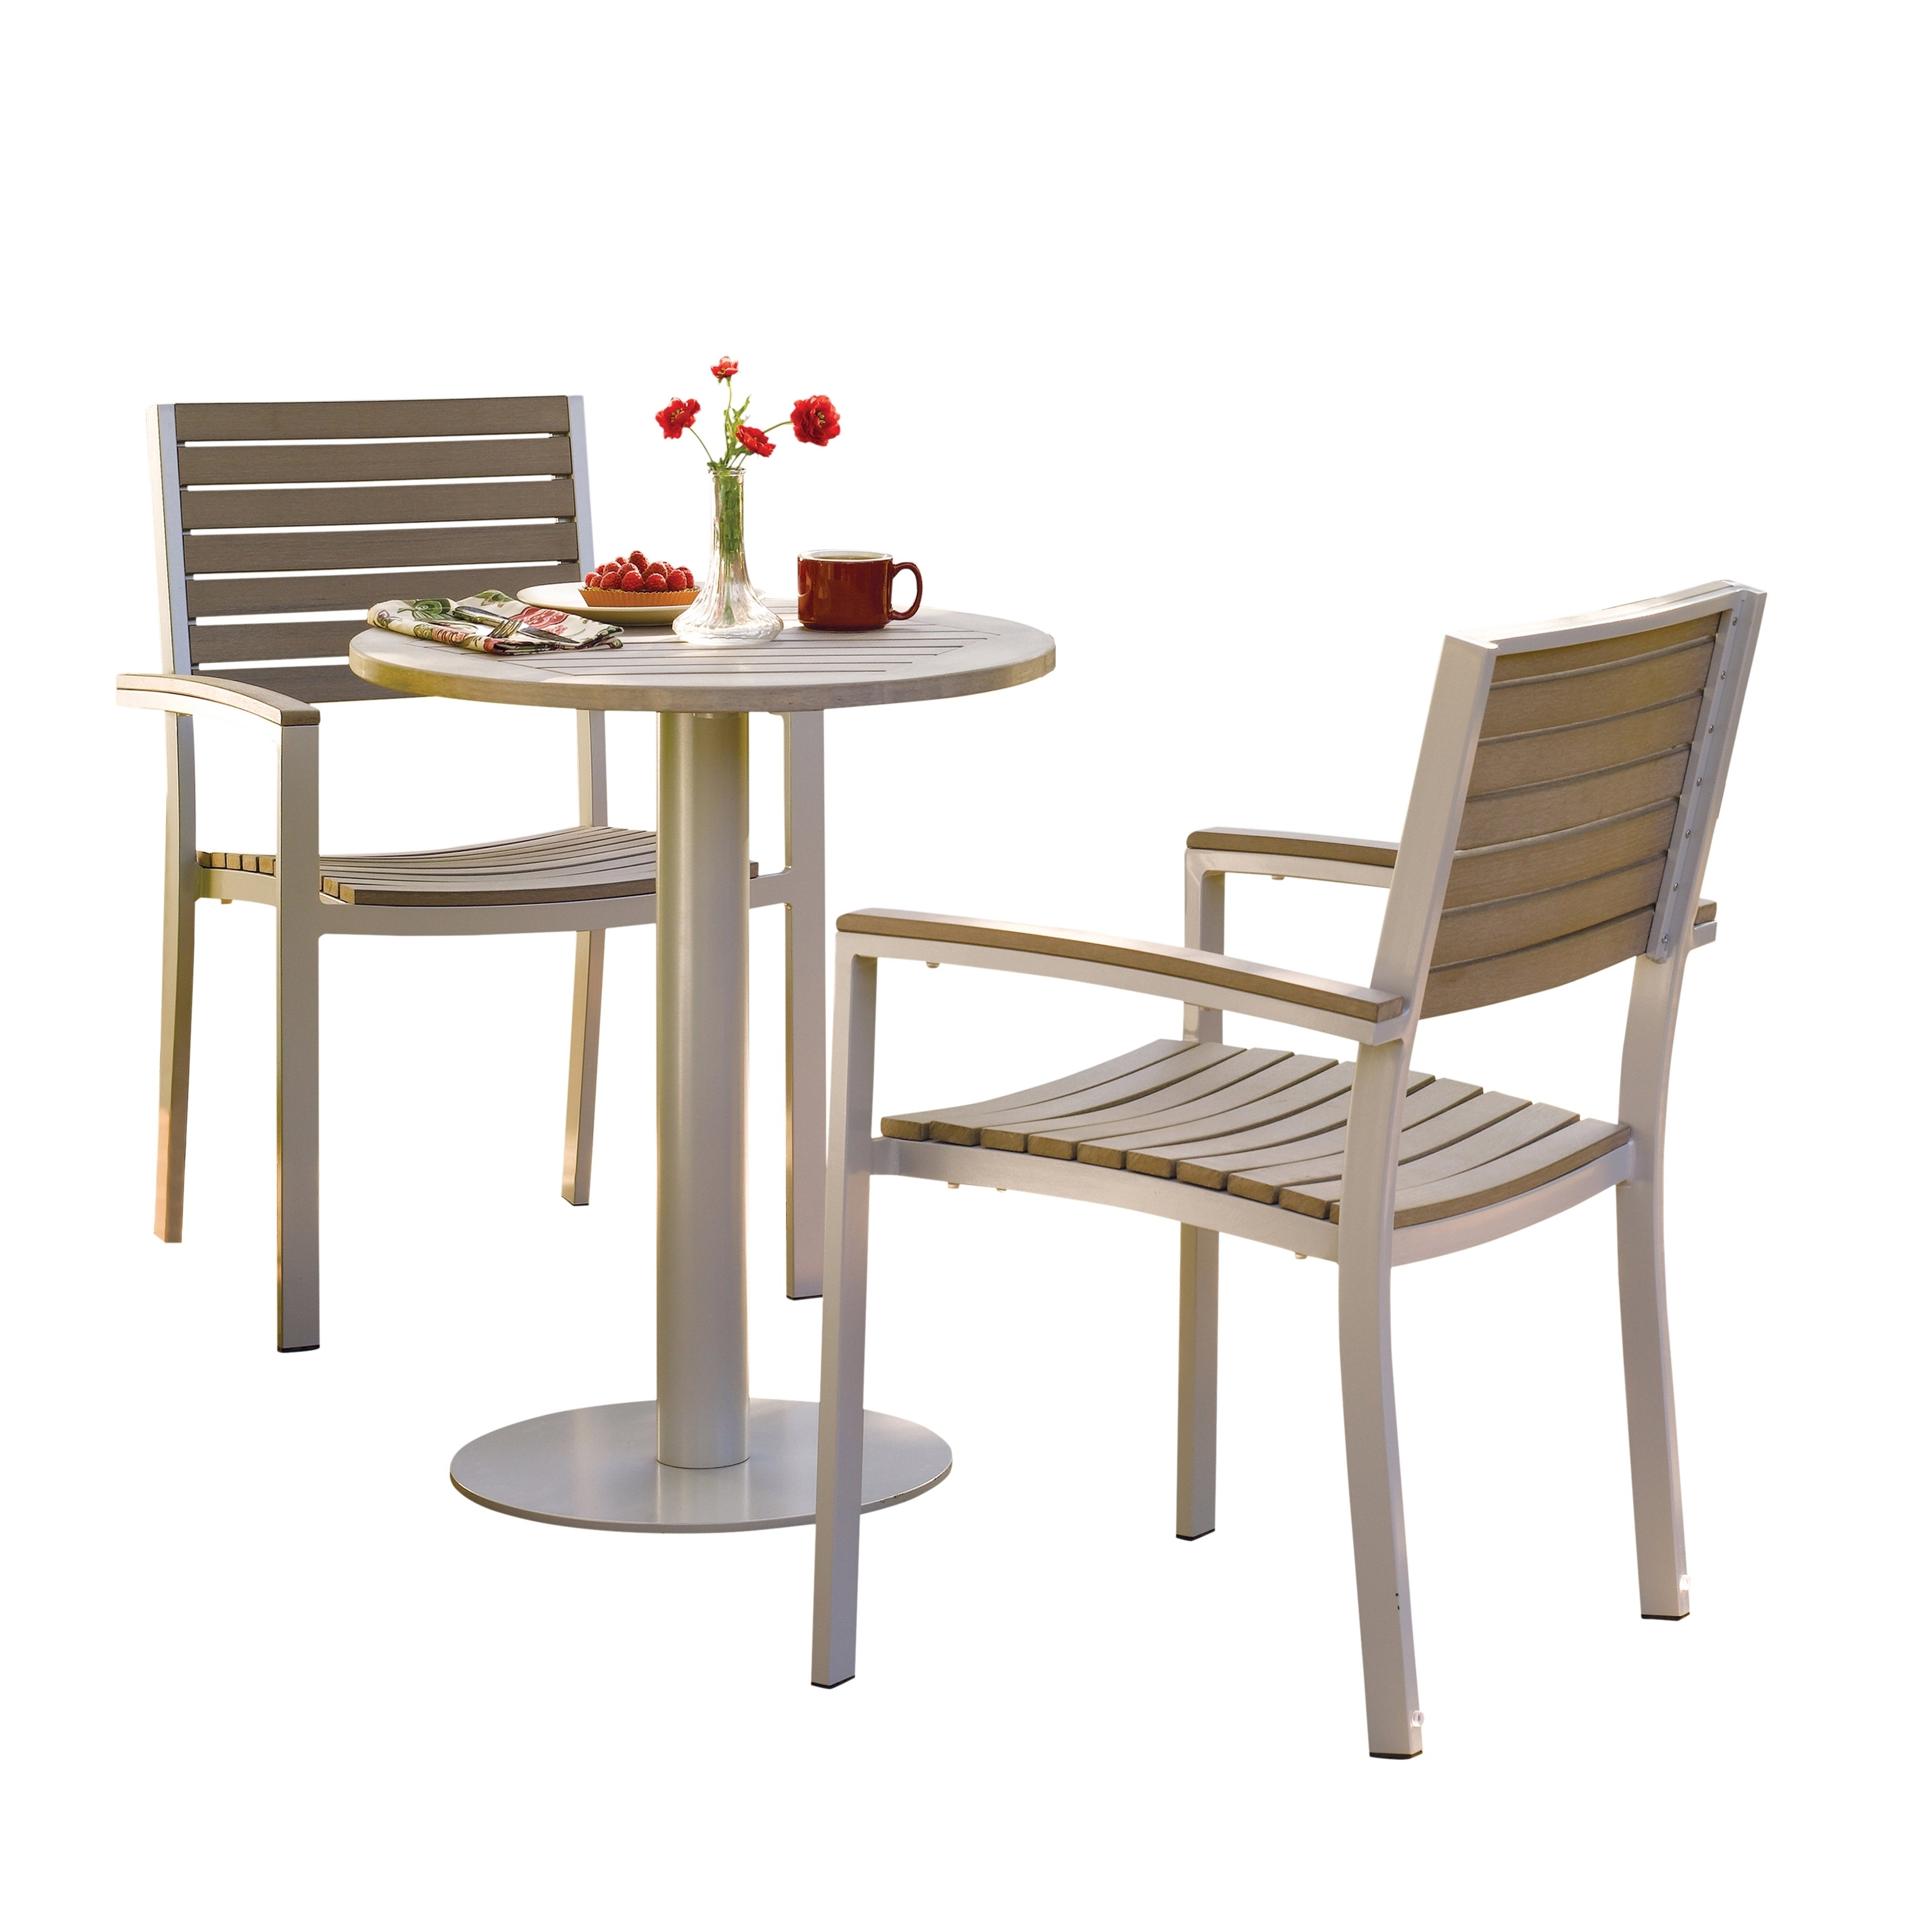 Exceptionnel Shop Oxford Garden Travira 5 Piece 24 Inch Bistro Table Set   Free Shipping  Today   Overstock.com   10174961